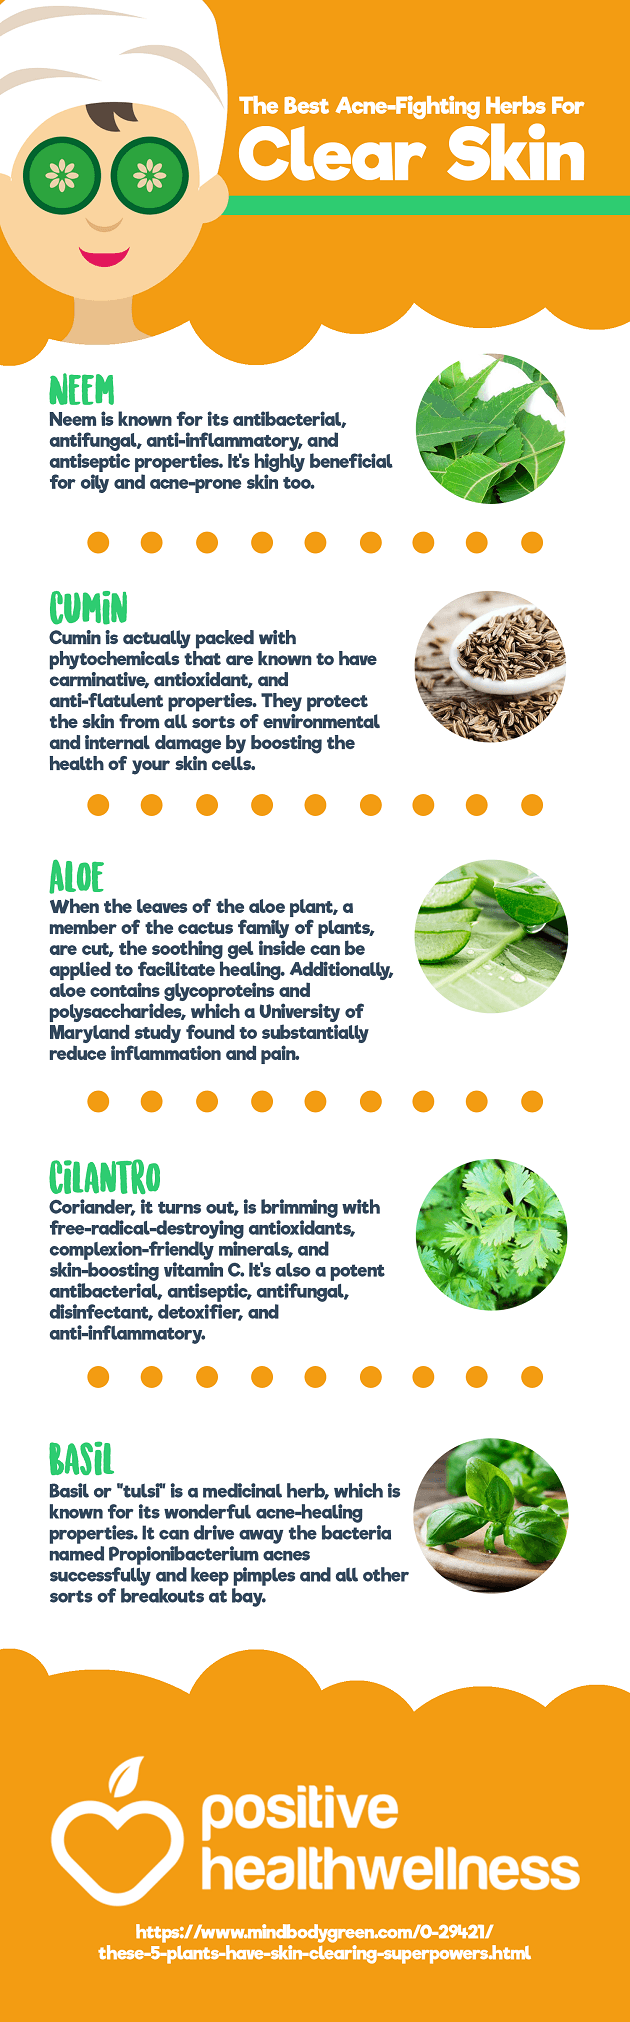 The Best Acne-Fighting Herbs For Clear Skin